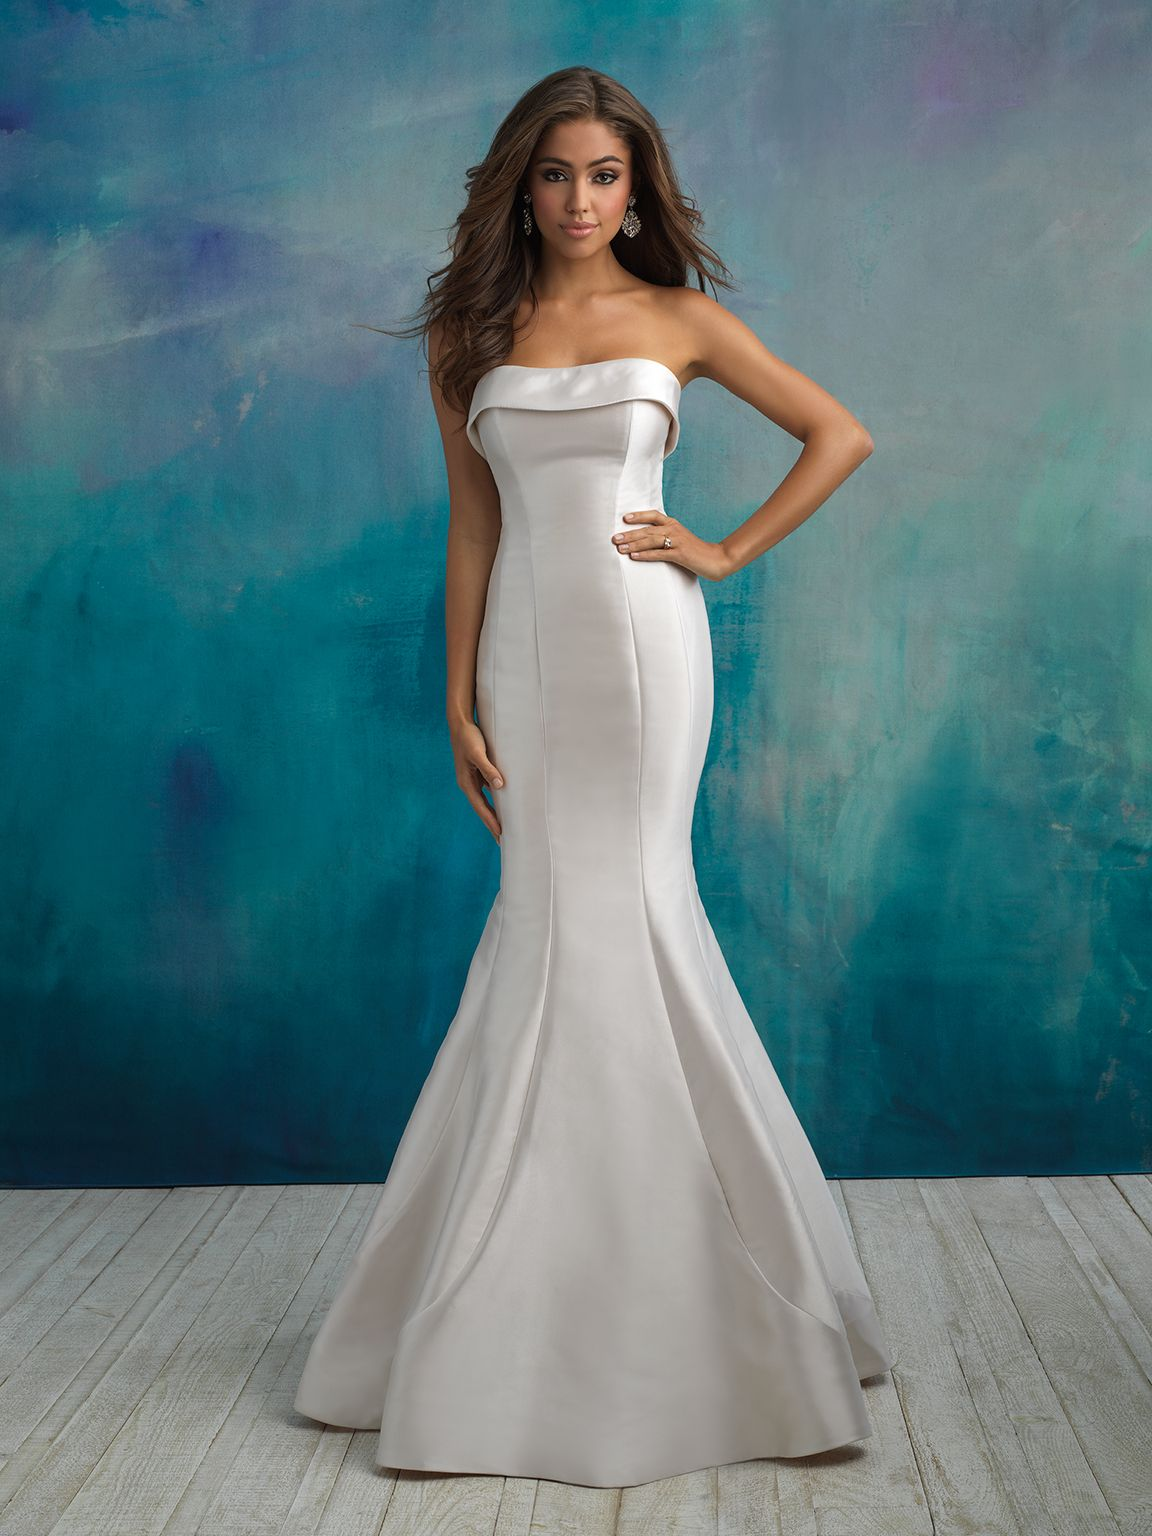 Chic, clean lines create a timeless silhouette in this strapless ...